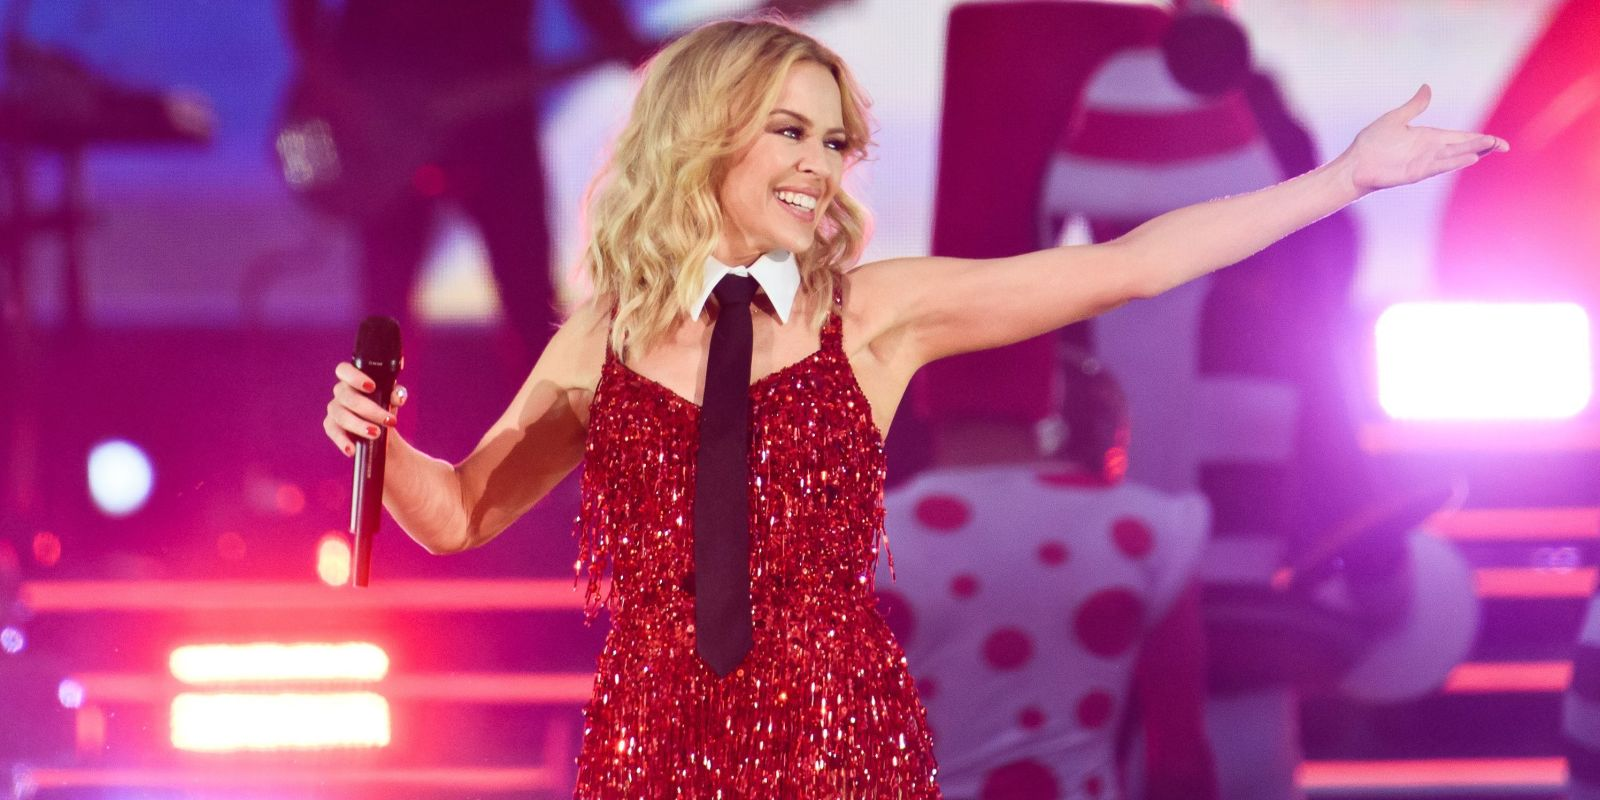 Kylie Minogue announces Golden Tour dates